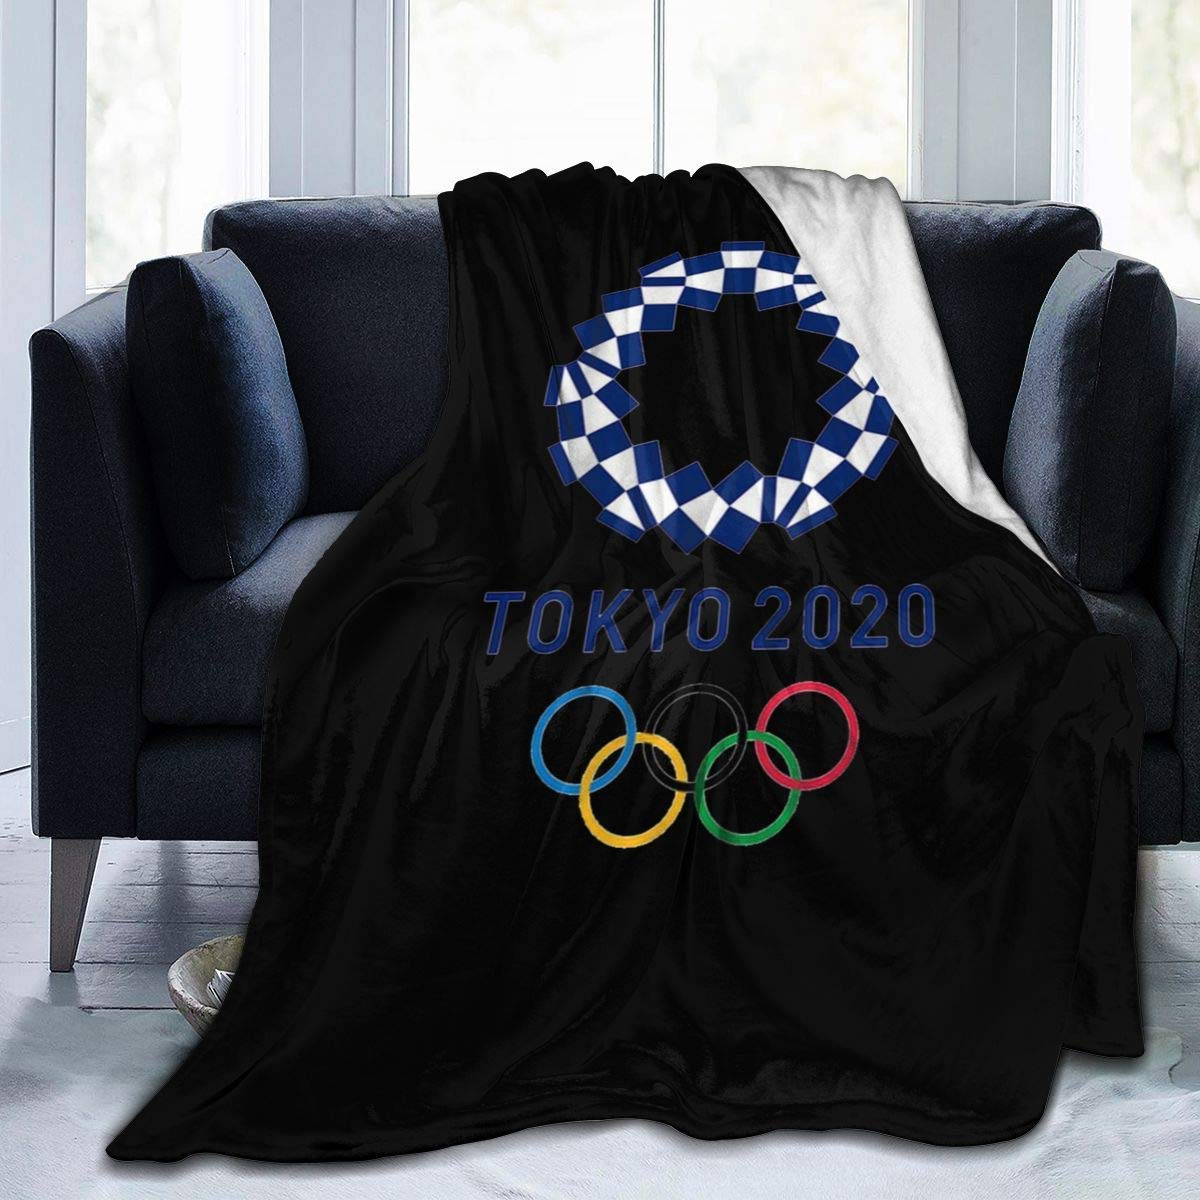 A Fencer's Guide to Holiday Gifts - Olympic & Star Wars Edition - Tokyo 2020 Olympic Blanket